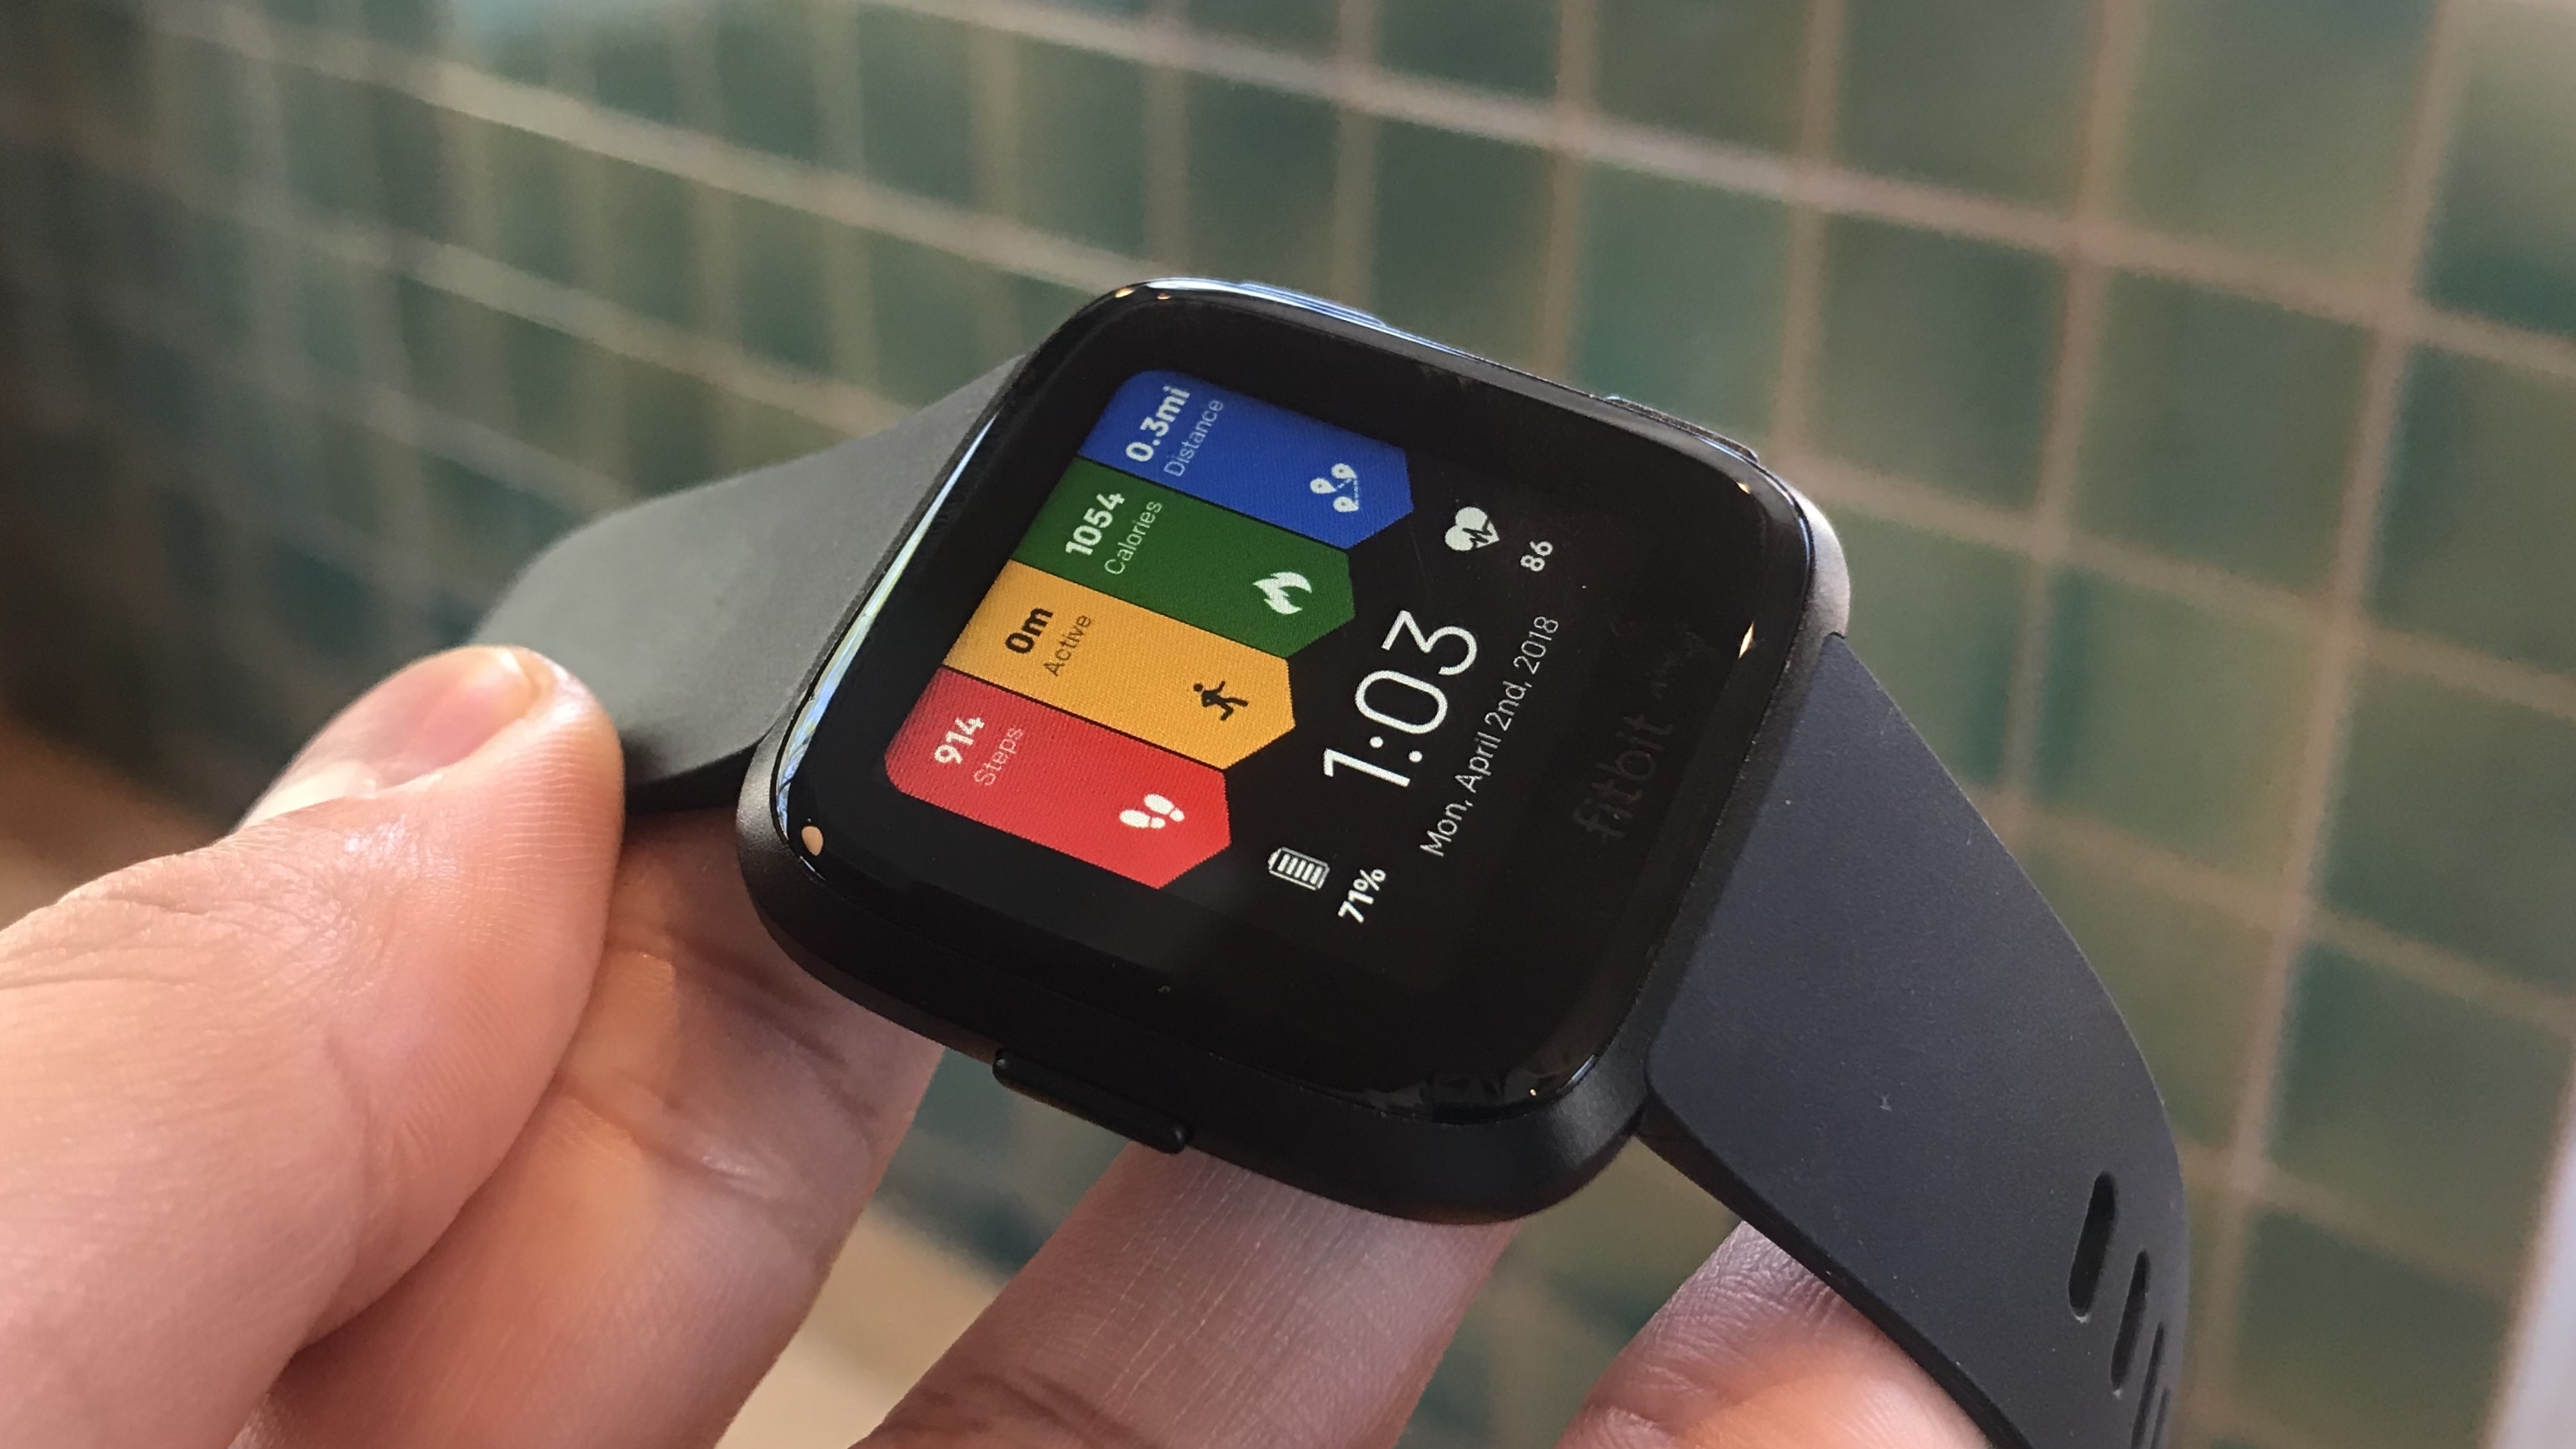 The Versa's digital clock display is completely customizable through the Fitbit app